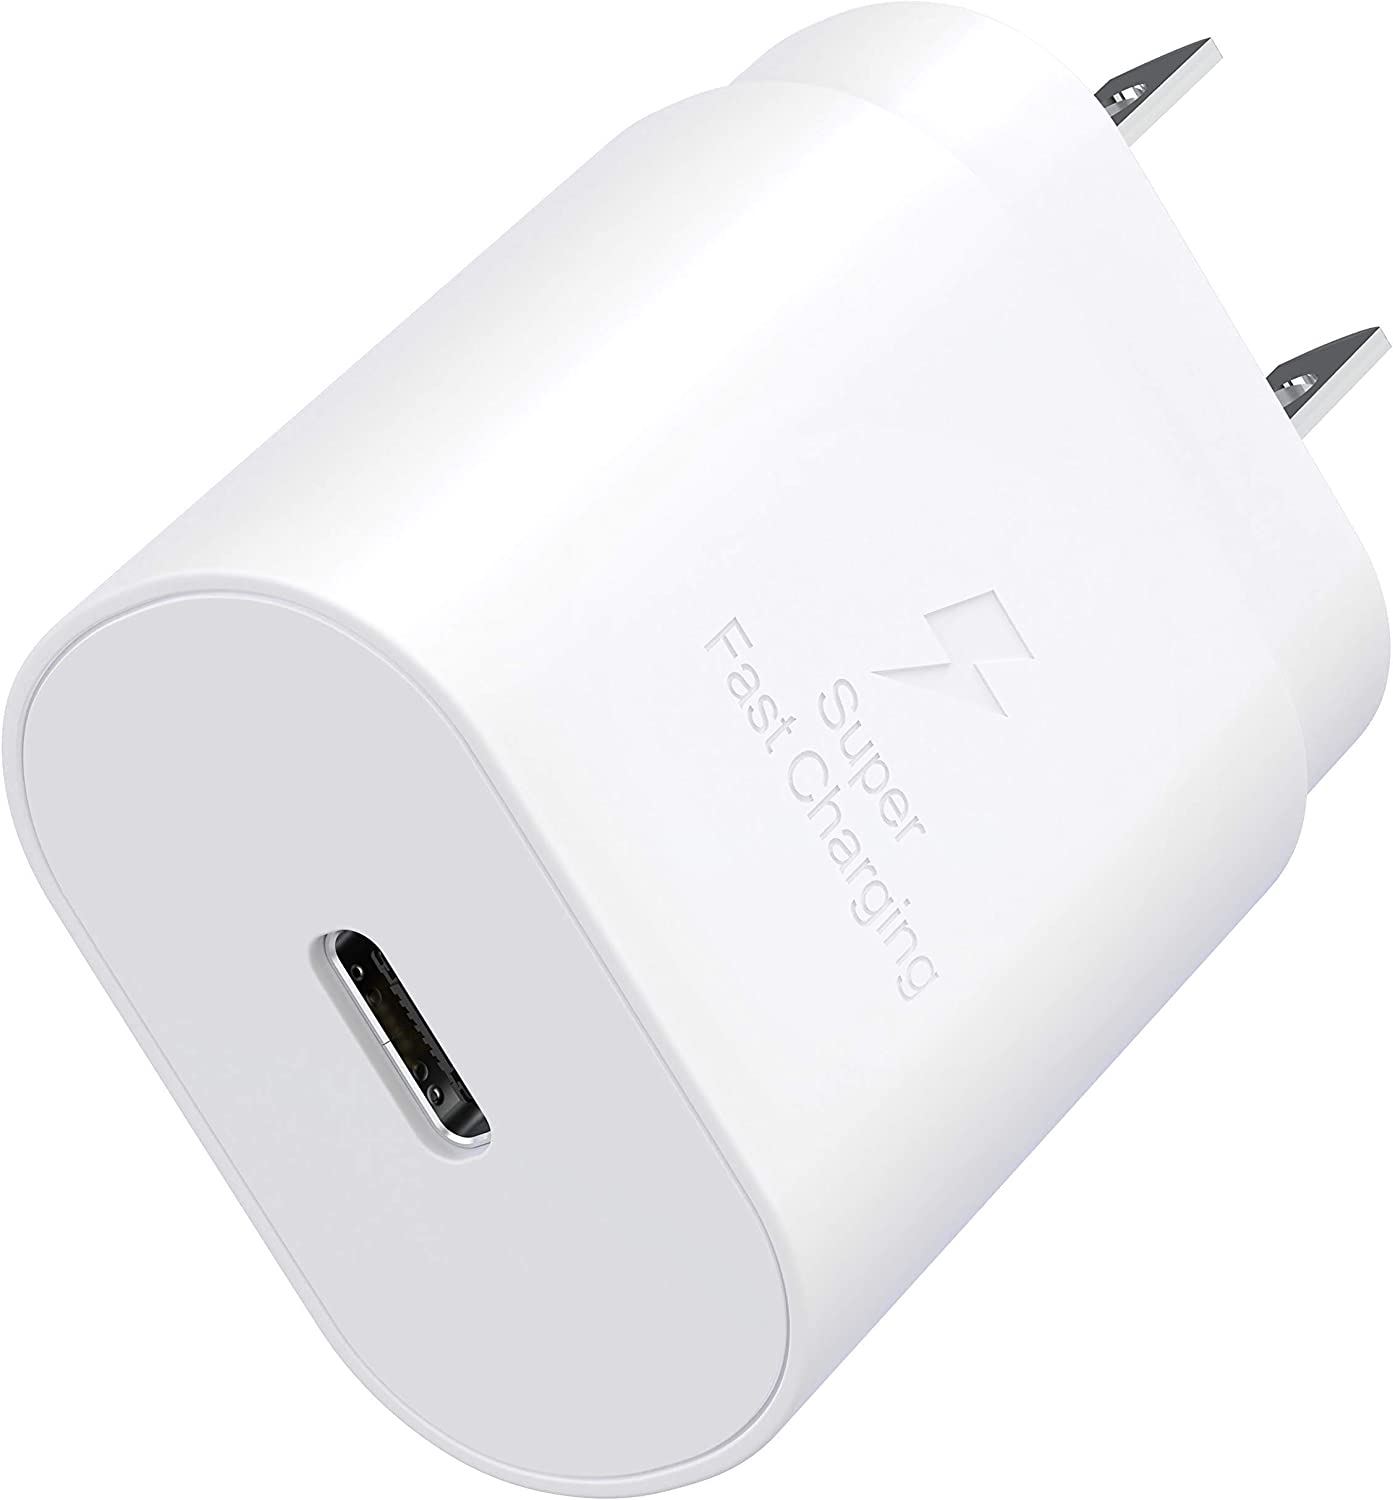 TT&C USB C 25W PD Fast Charger Type C Charger Wall Plug Adapter Block Compatible with iPhone 12/iPhone 12 Pro/12 Pro Max/iPhone 12 Mini/iPhone 11/iPad Pro/Samsung Galaxy S21 Plus/S20/S20 Ultra/Note20